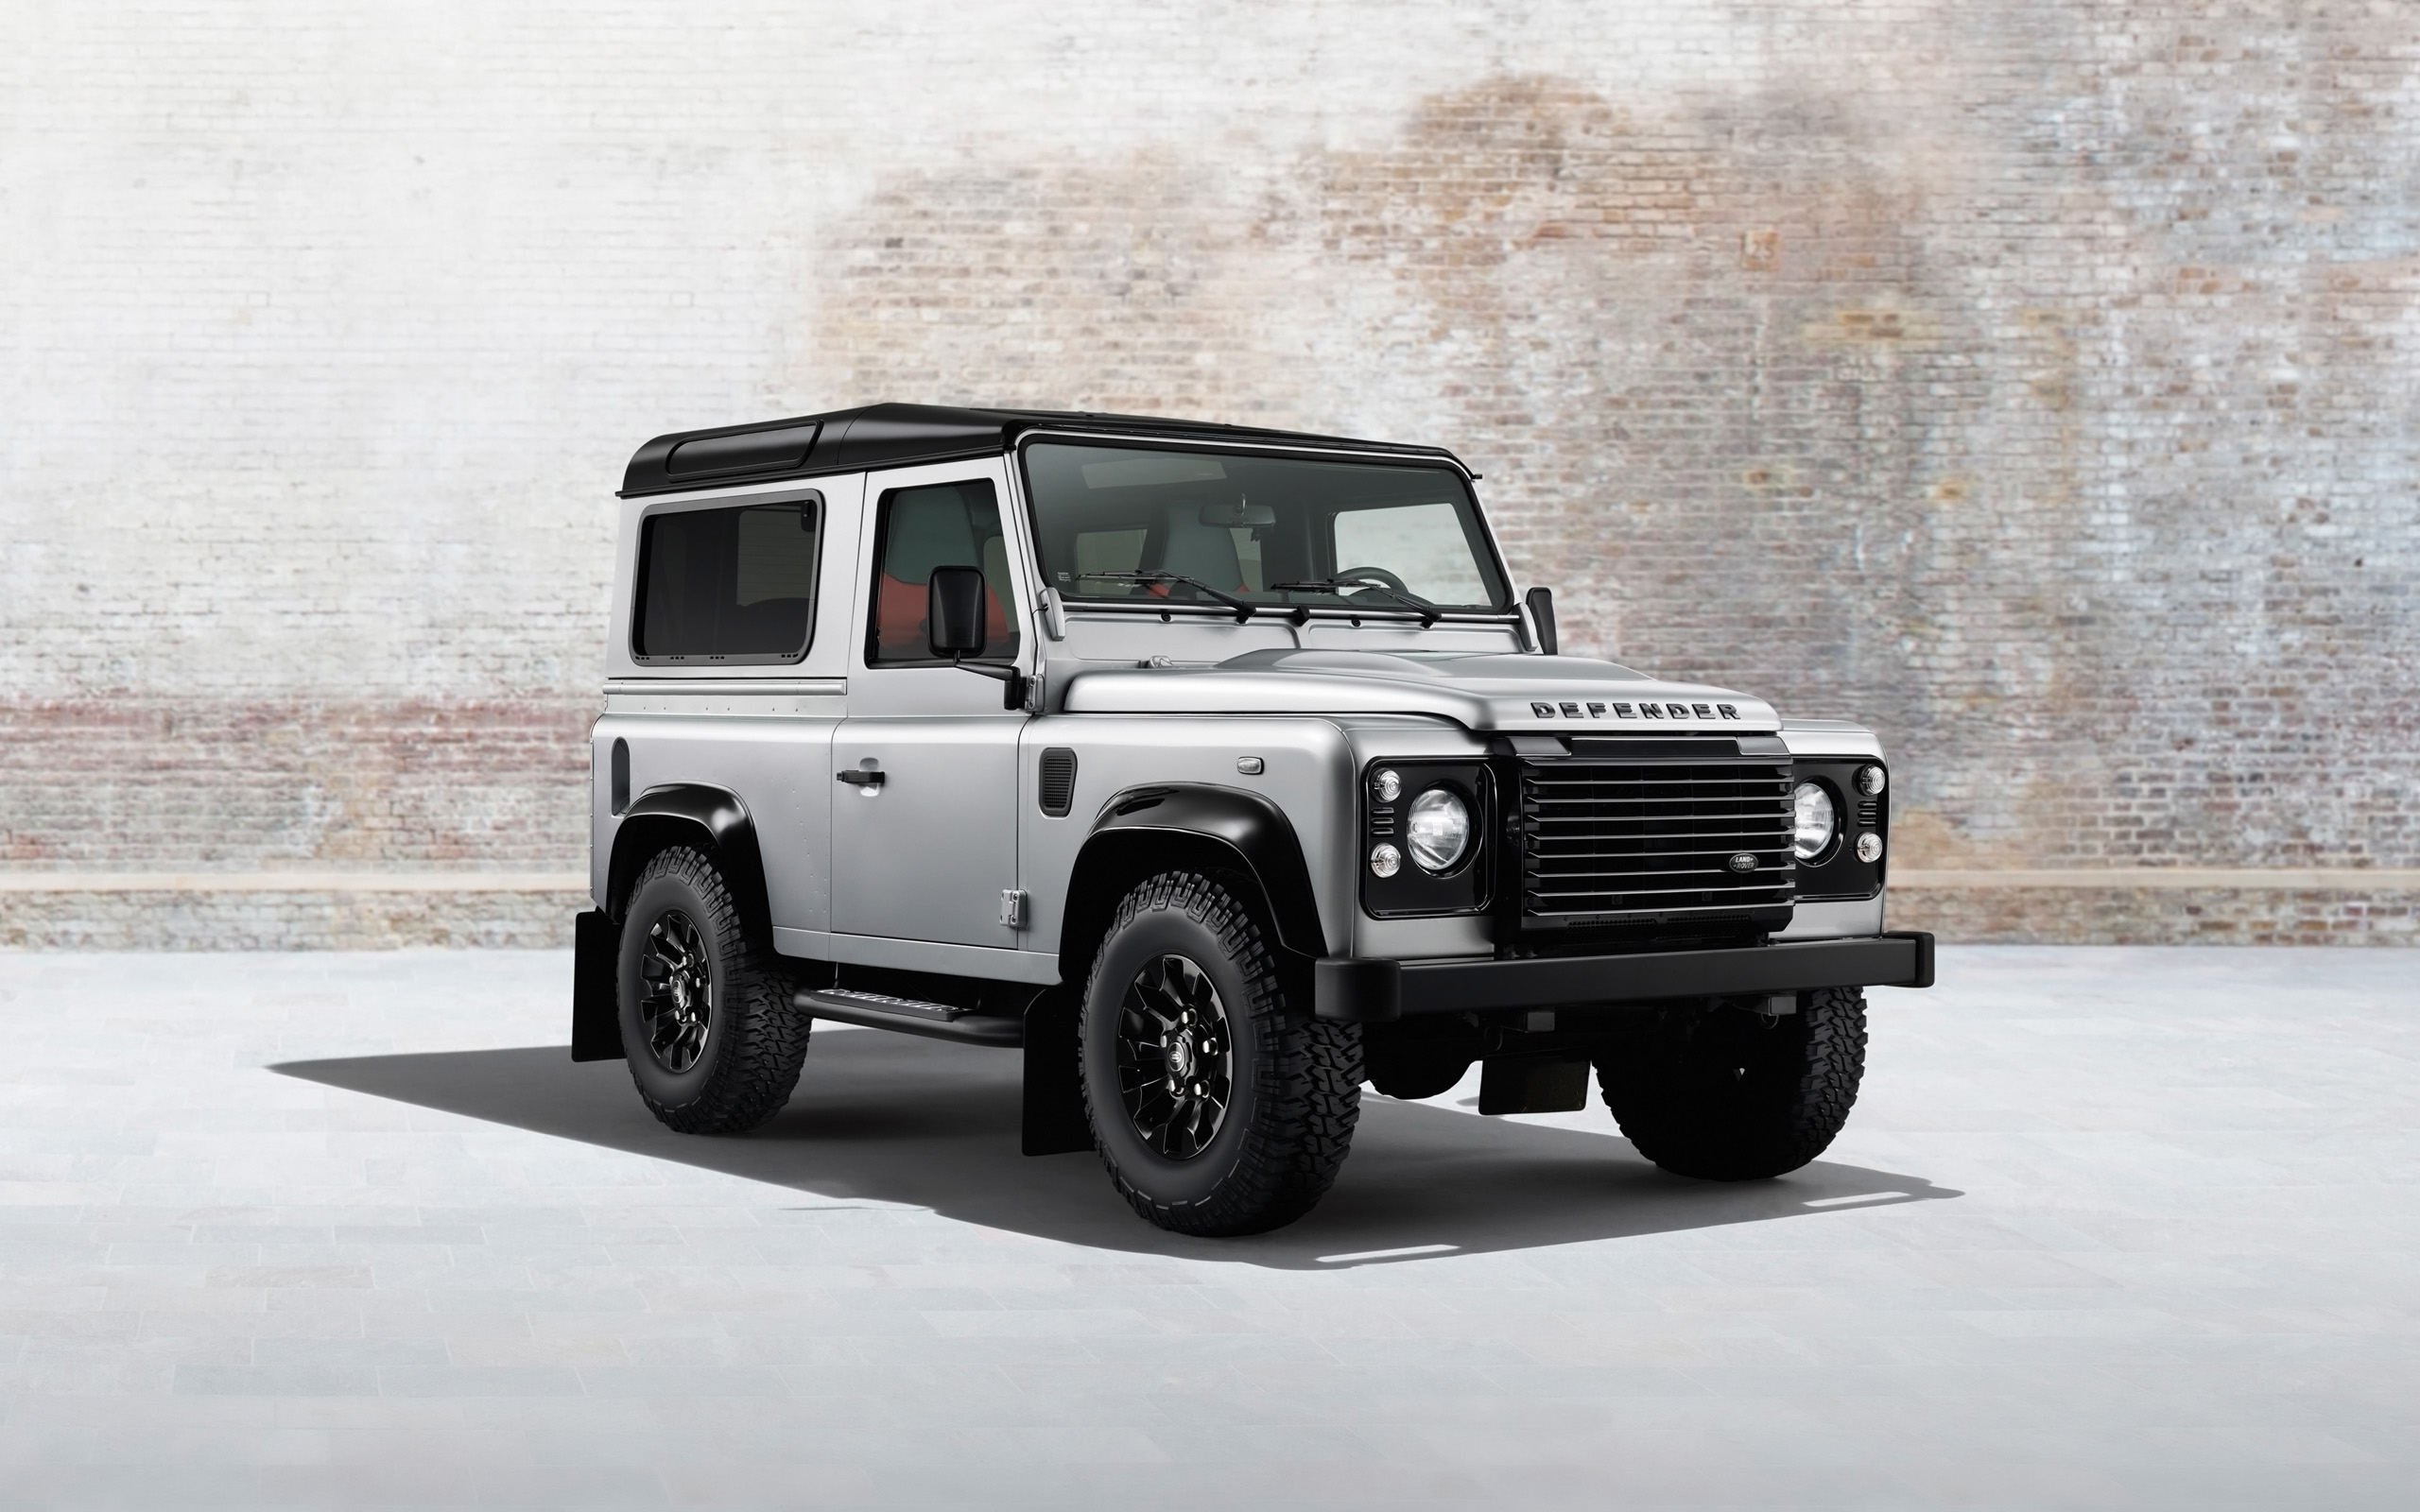 2014 Land Rover Defender Wallpaper | HD Car Wallpapers | ID #4158